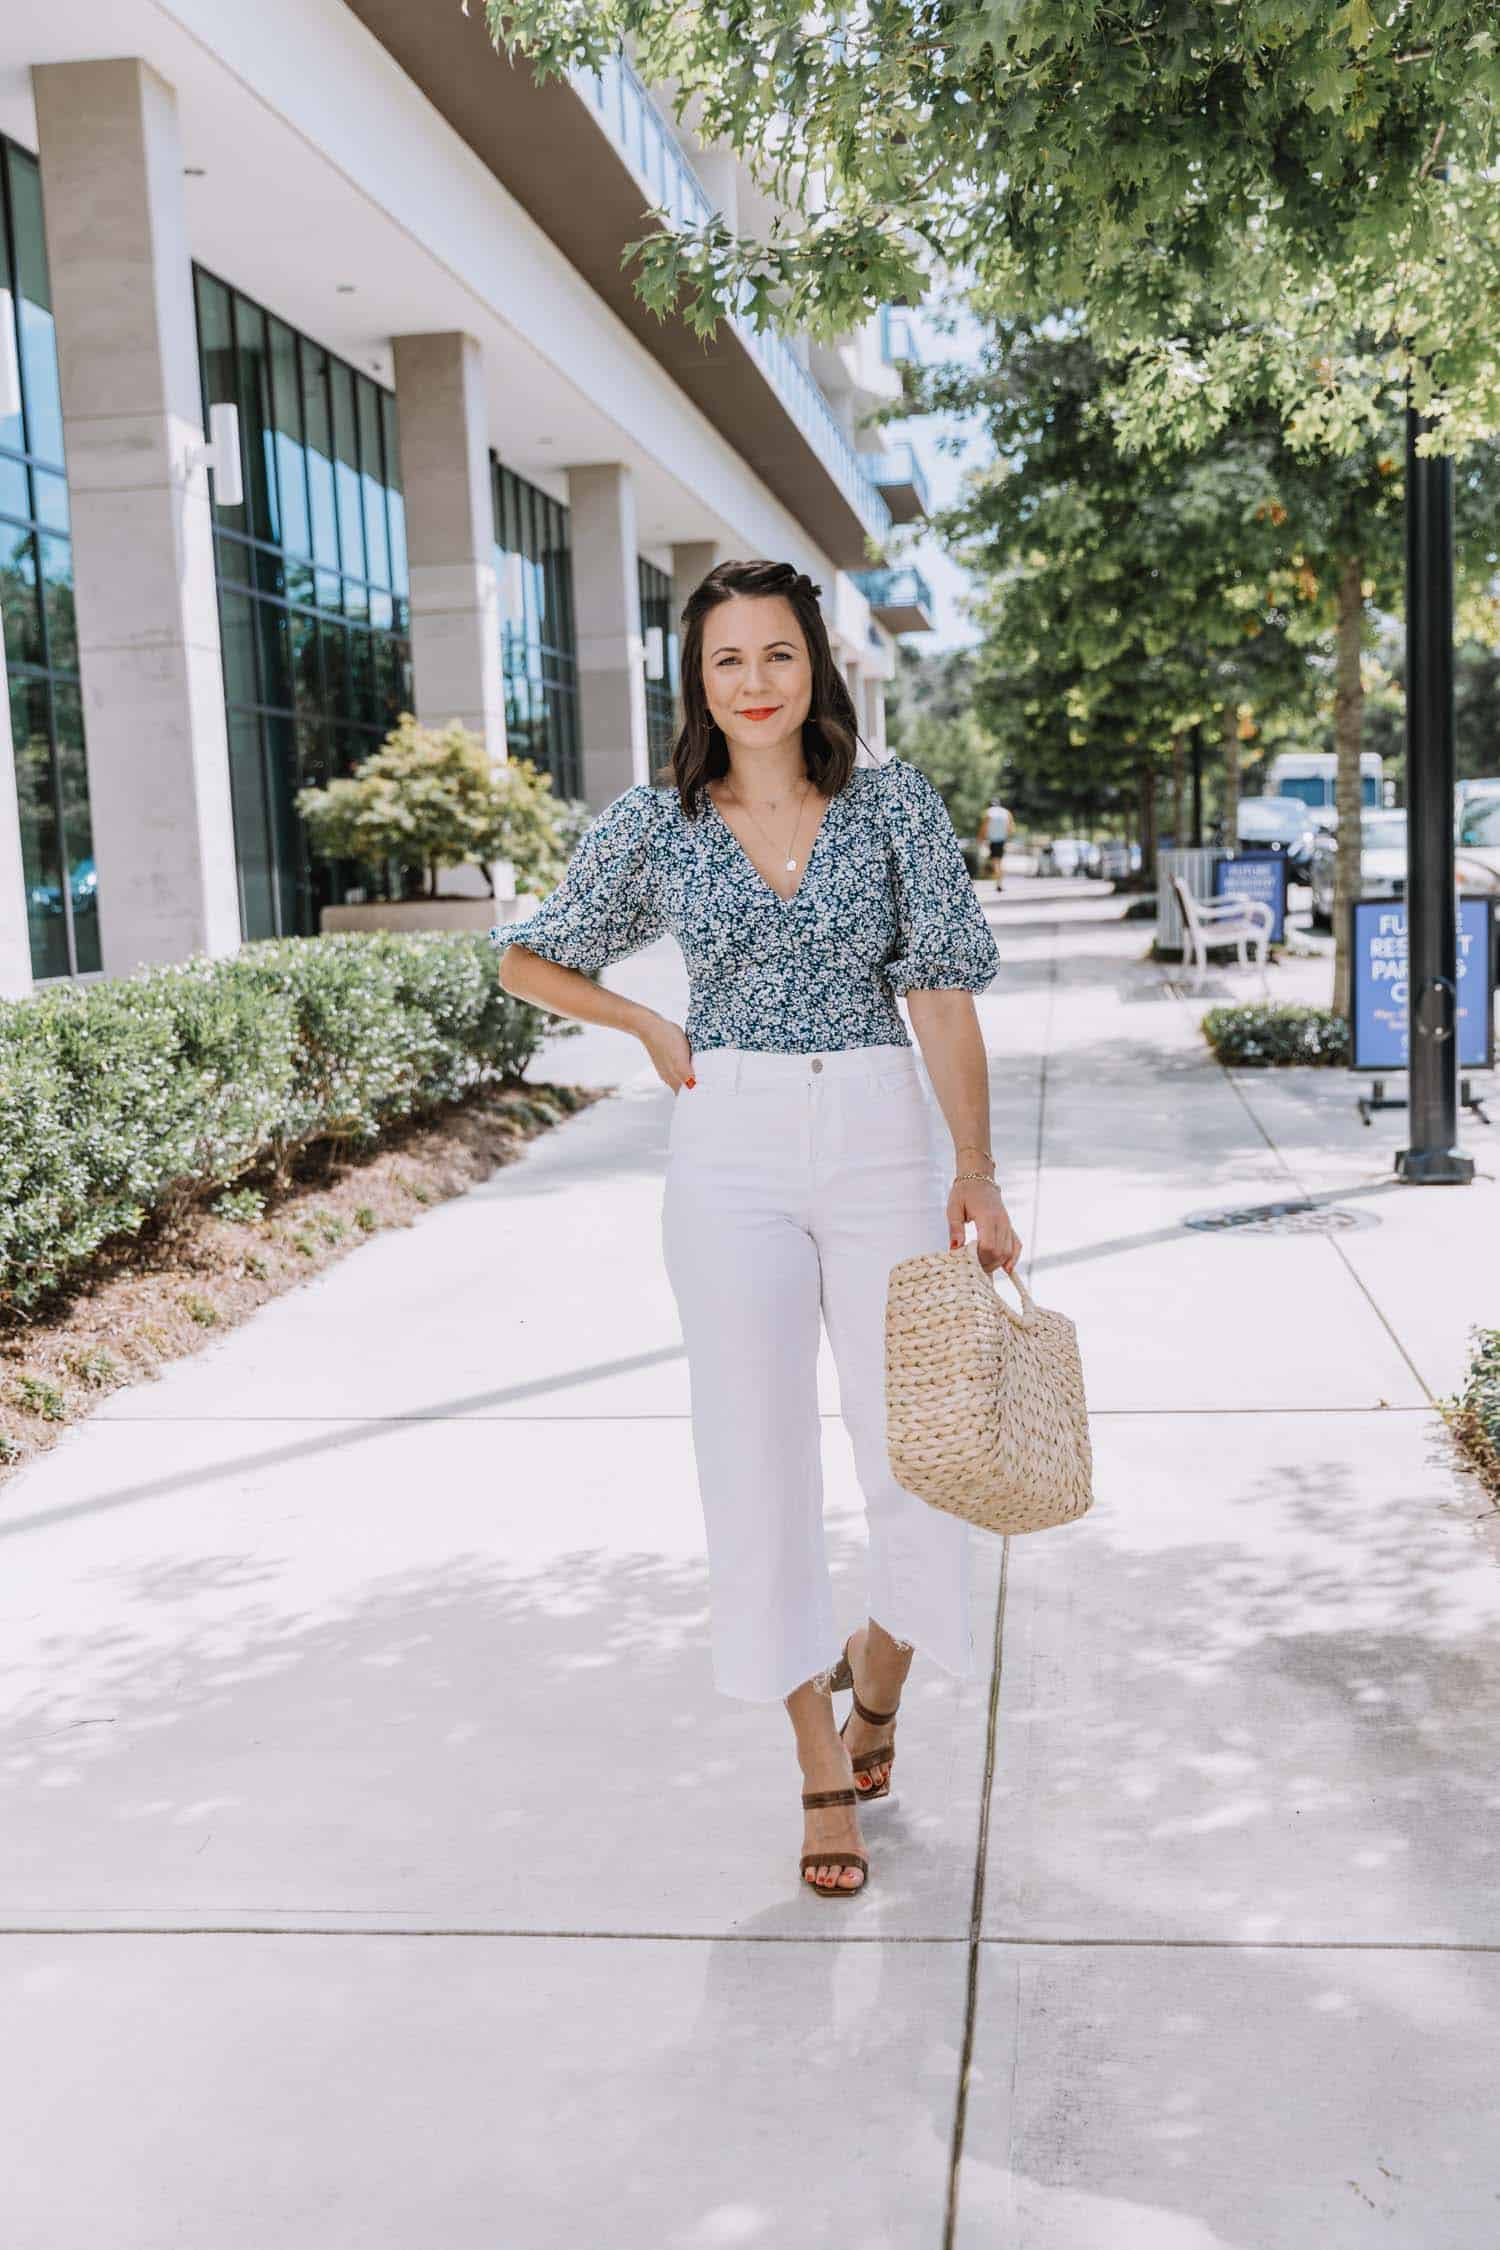 Abercombie & Fitch Top, White Crop Pants, Straw Bag